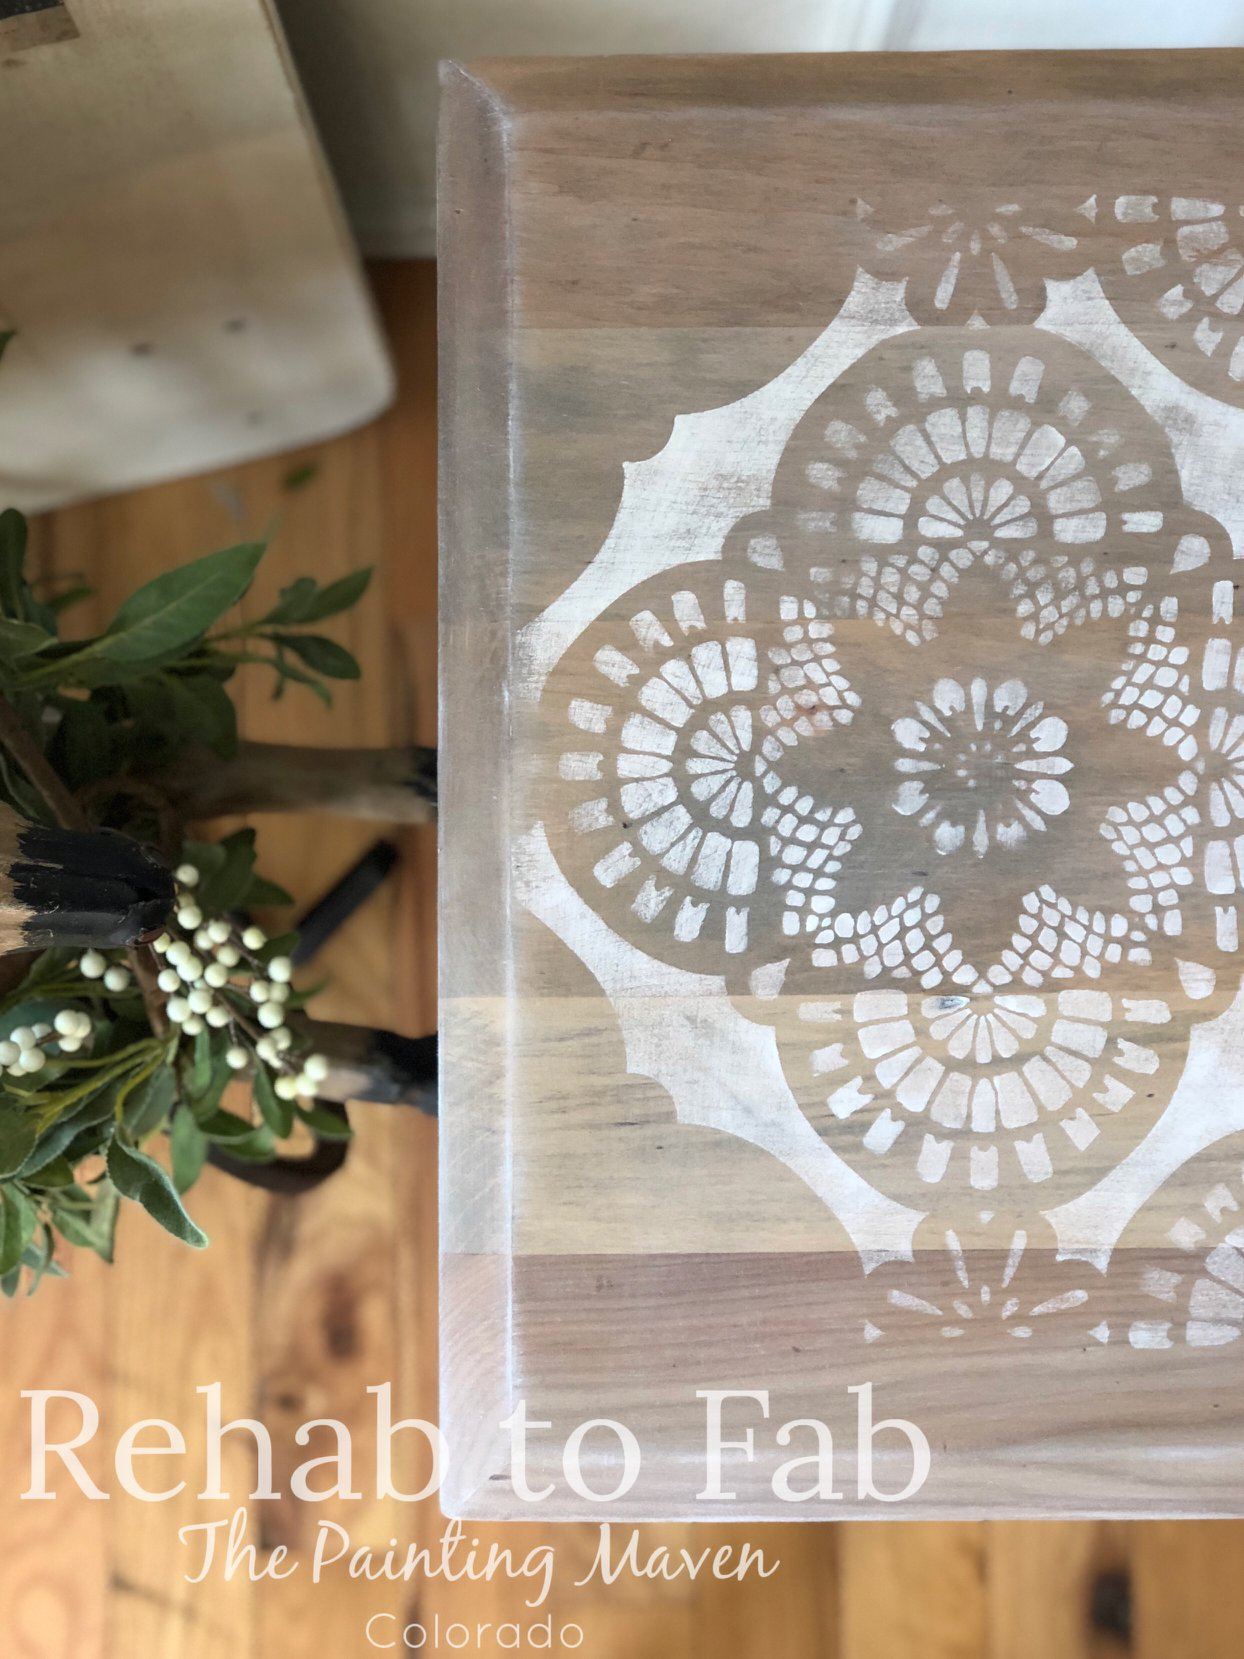 Here is a closeup look at the stencil design over the wood. Beautiful and soft!